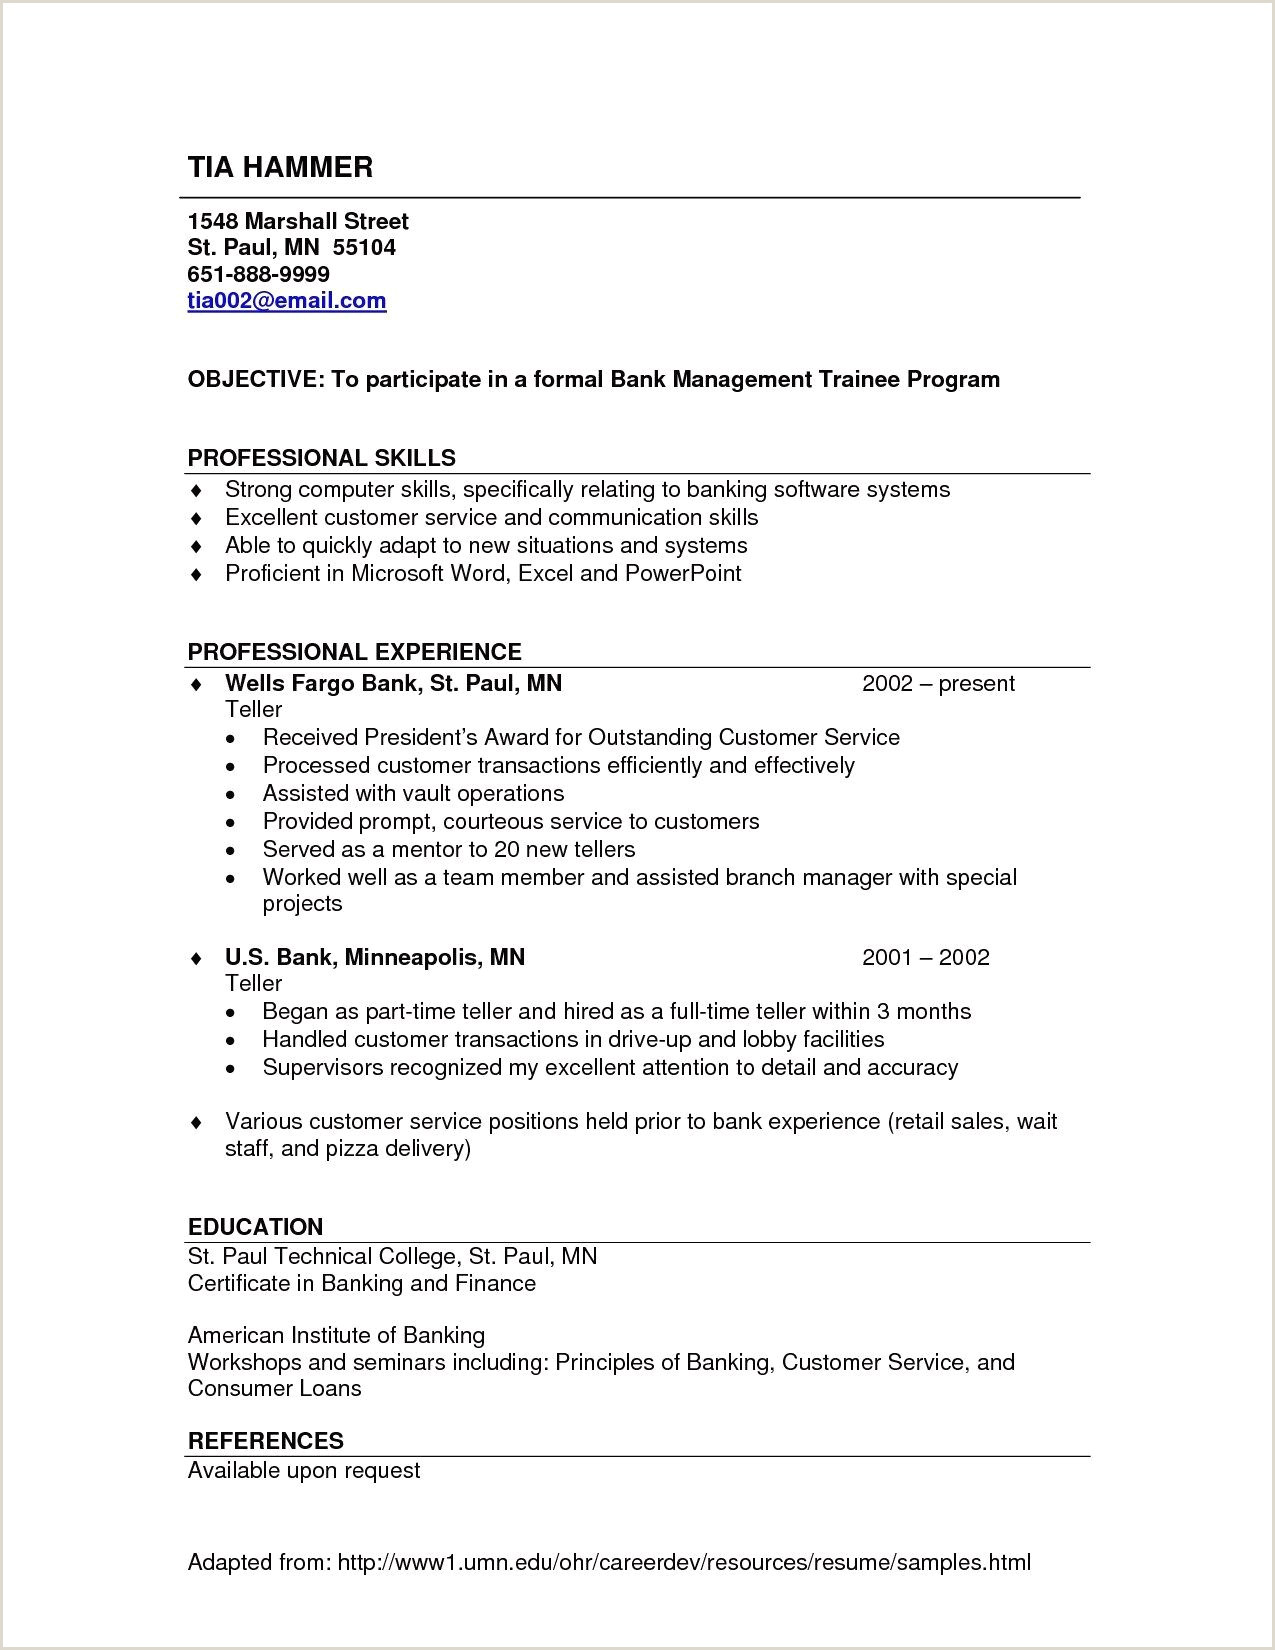 Environmental Services Resume Sample Unique format Resume